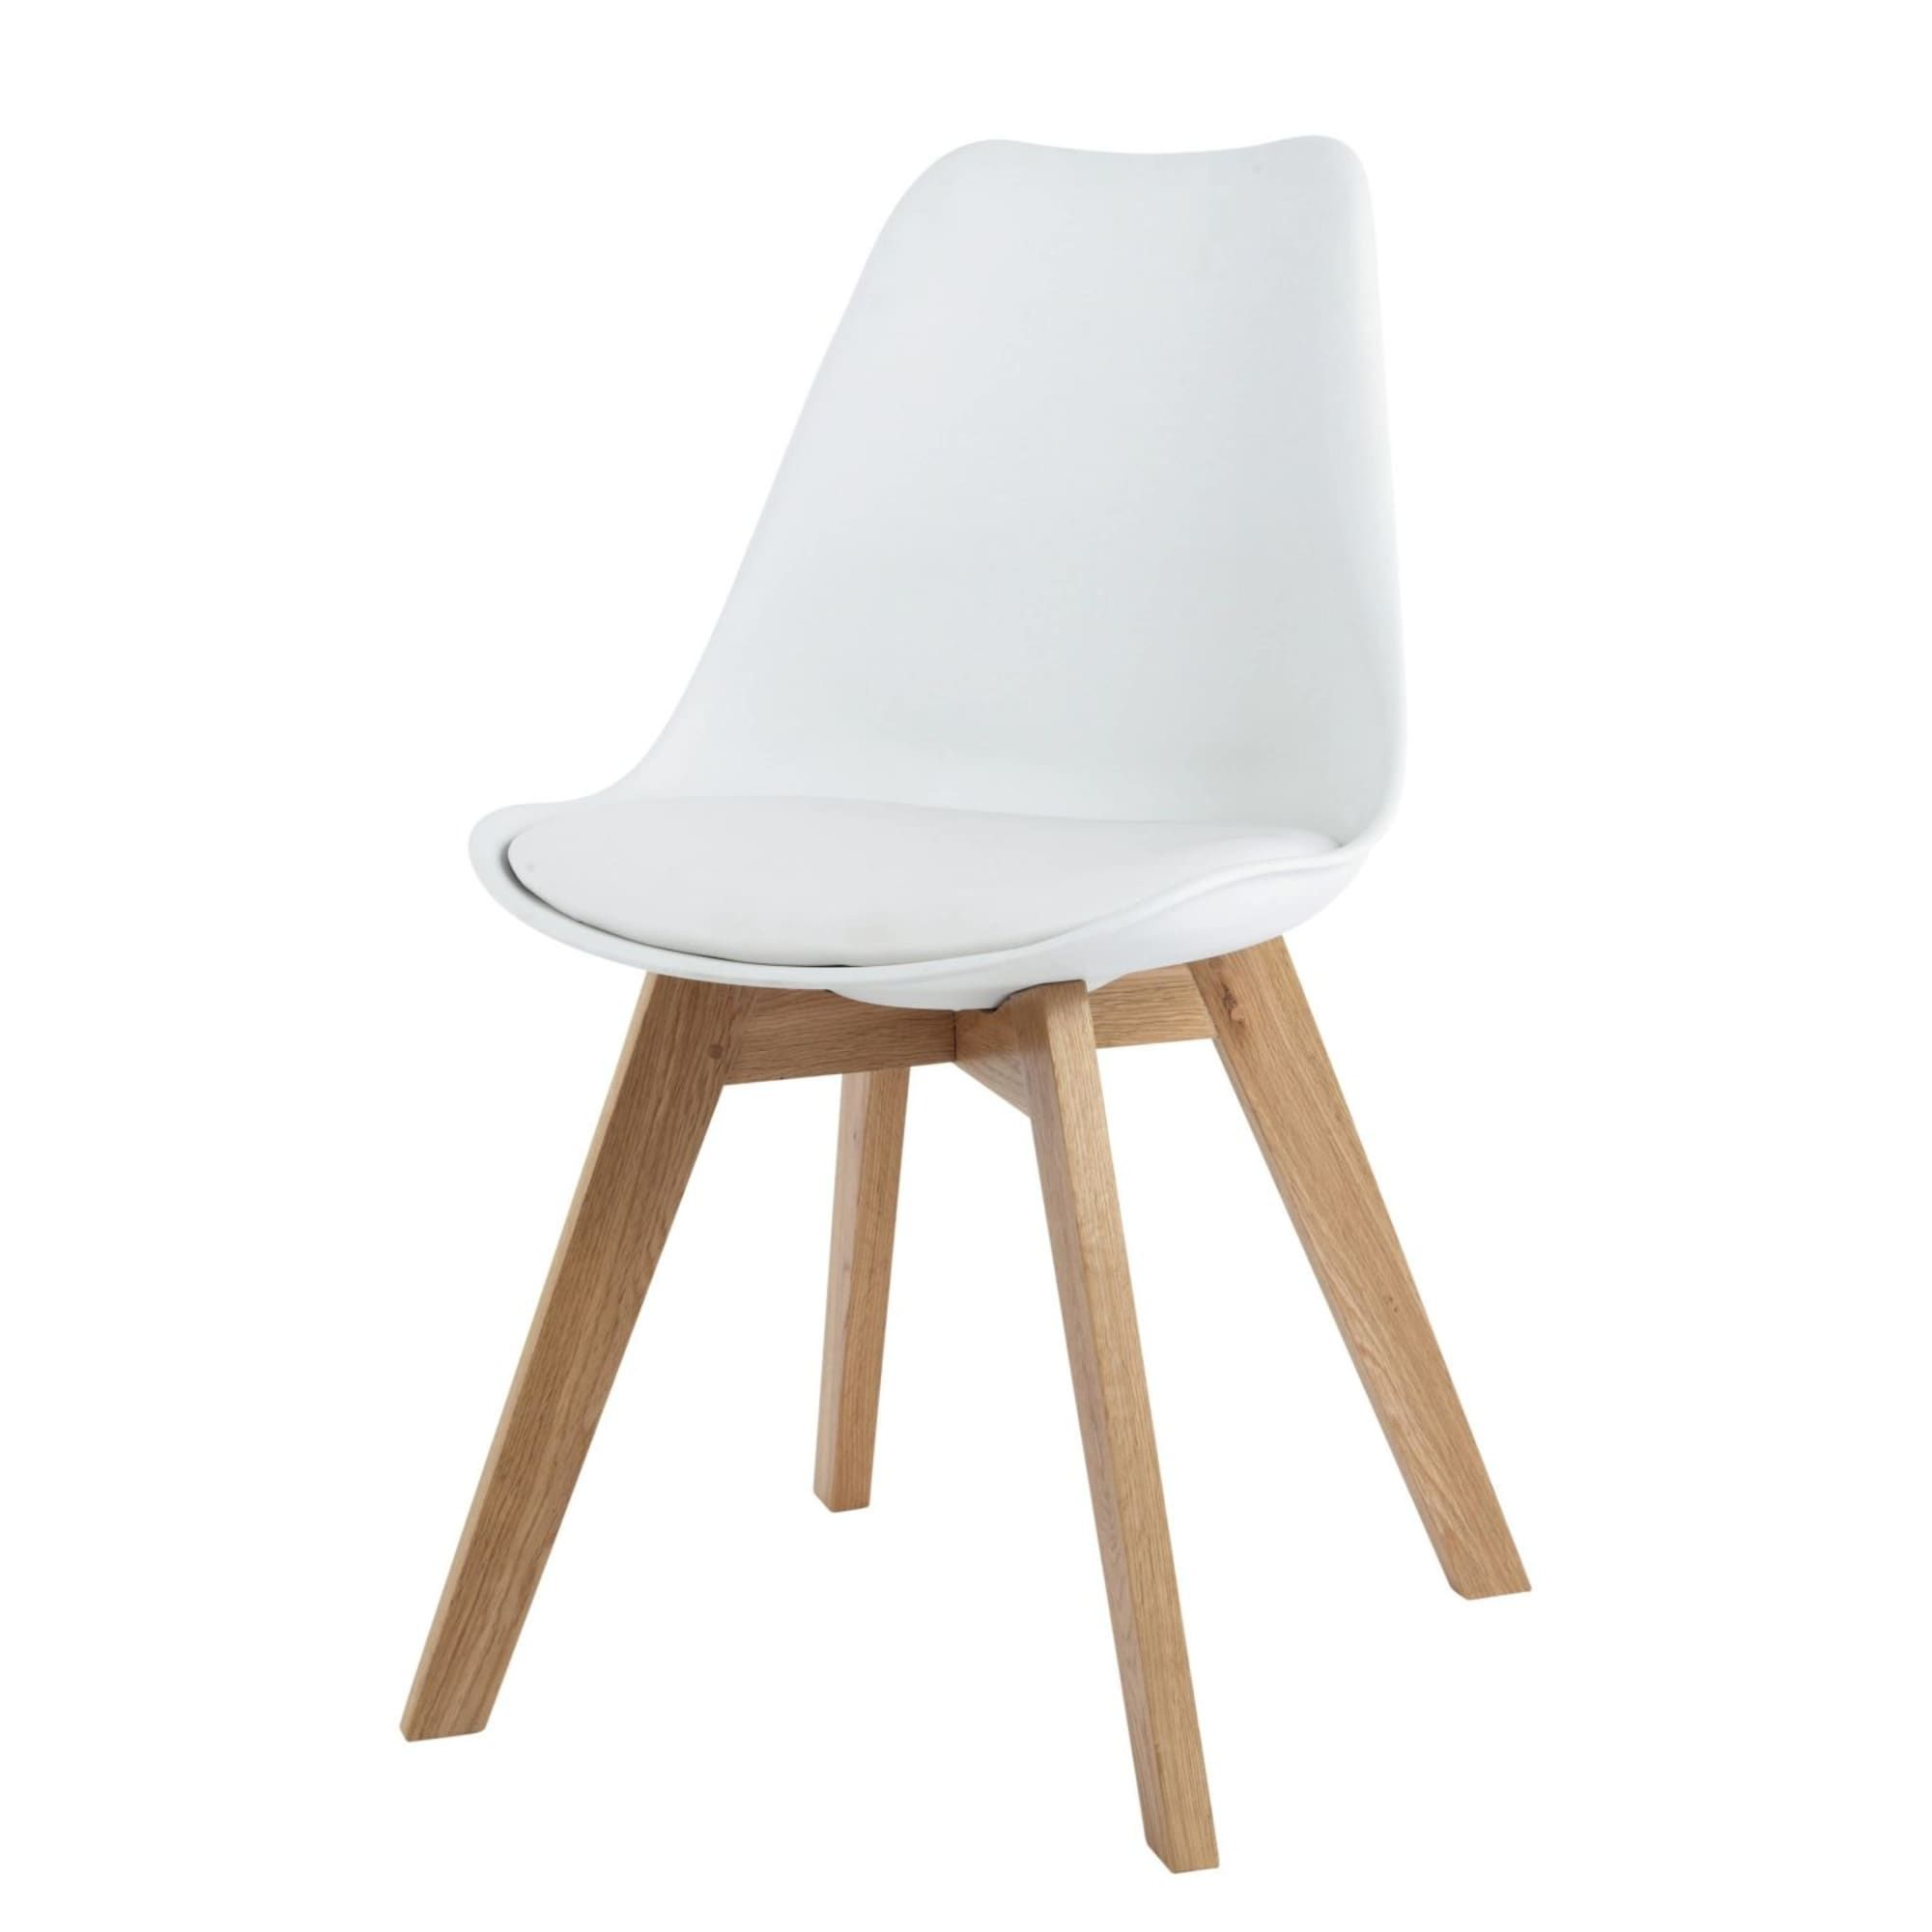 White Scandinavian Chair With Solid Oak Scandinavian Chairs Solid Oak Upholstered Dining Chairs